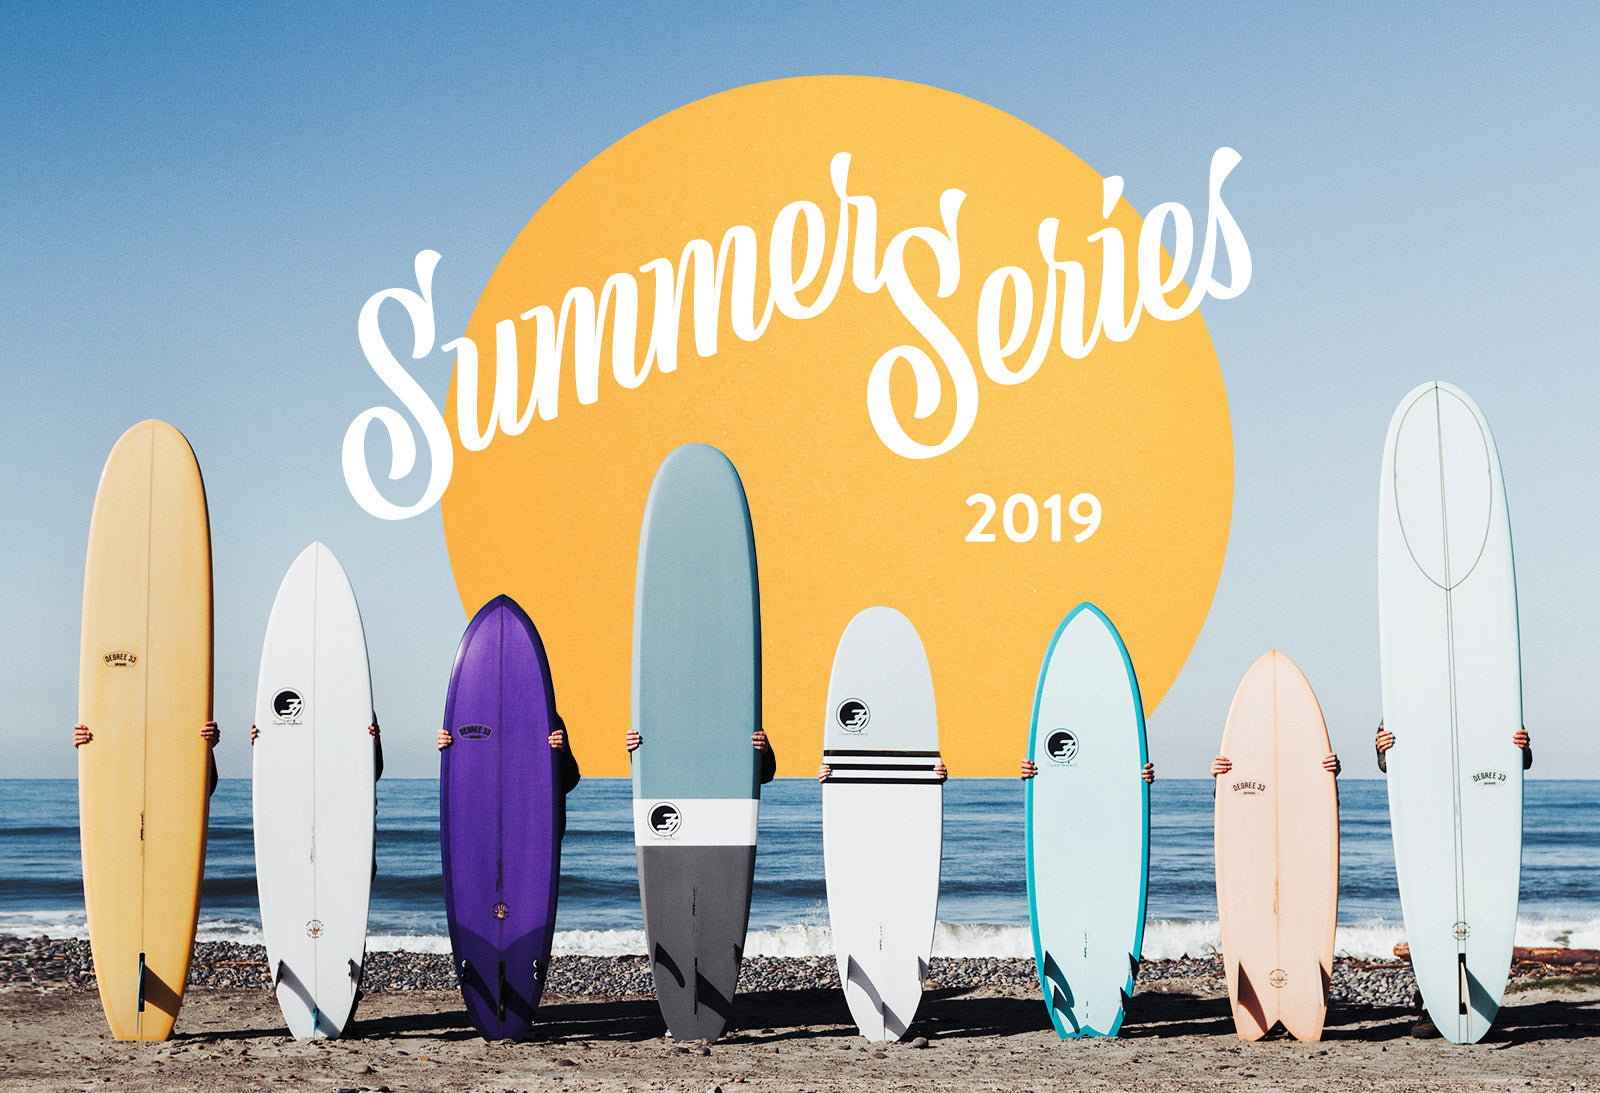 Degree 33 Surfboards | The #1 Online Surfboard Brand in the US